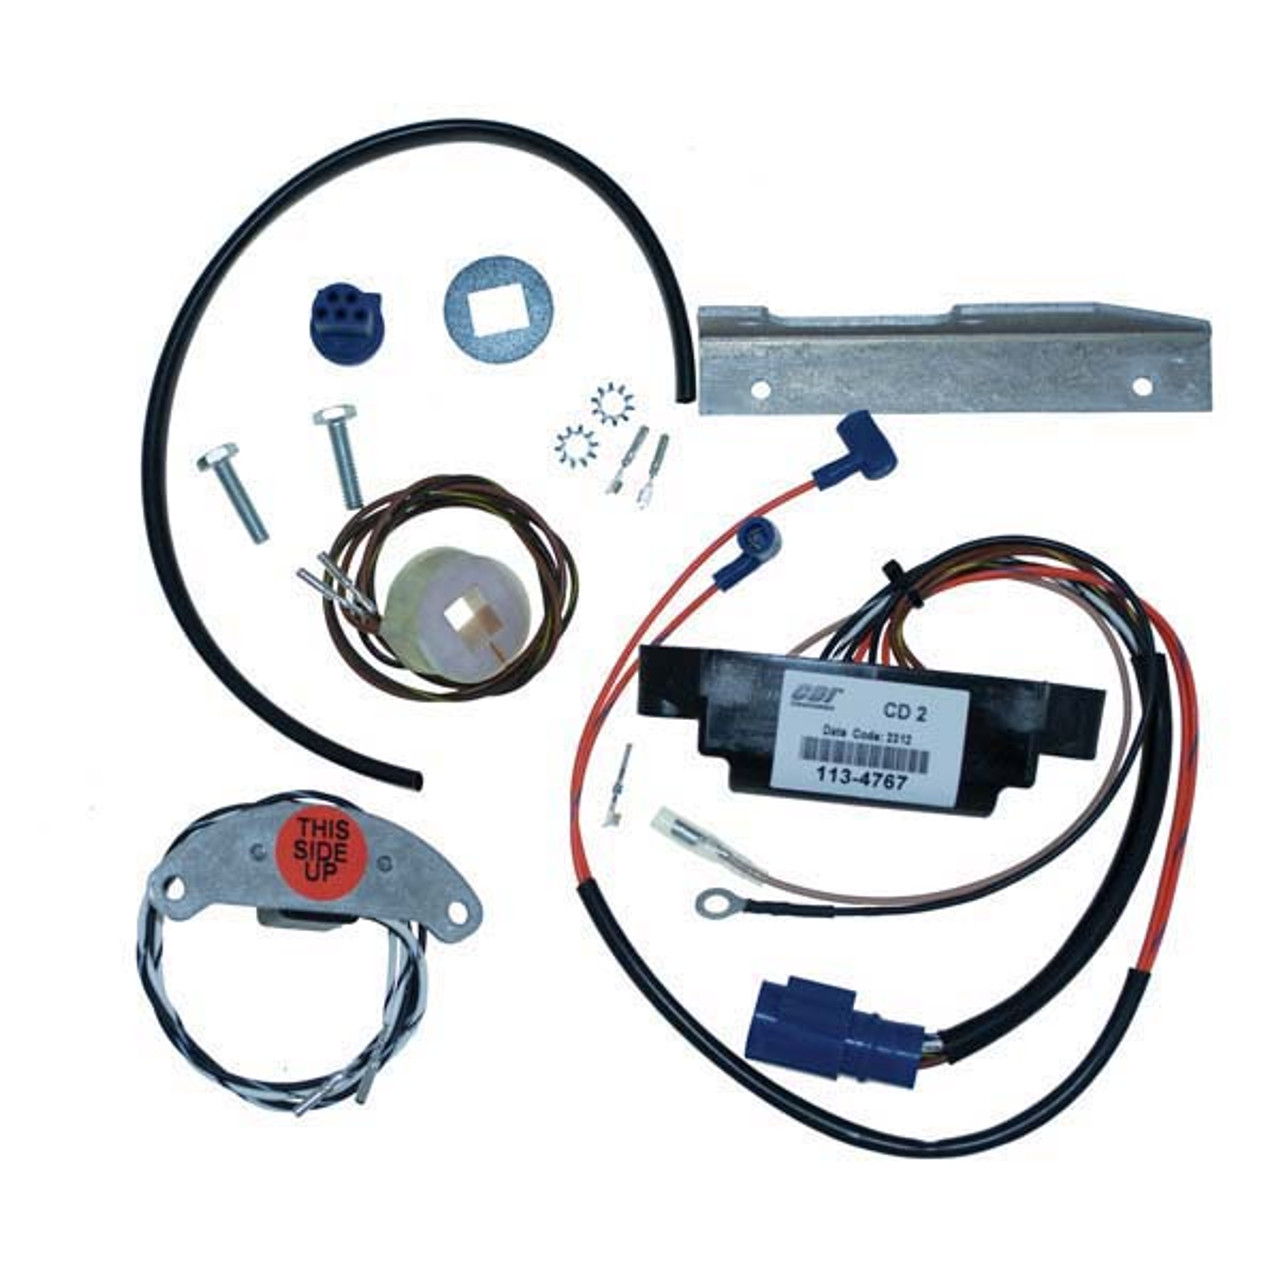 CDI 113-4489 Johnson Evinrude Power Pack CD2 Conversion Kit